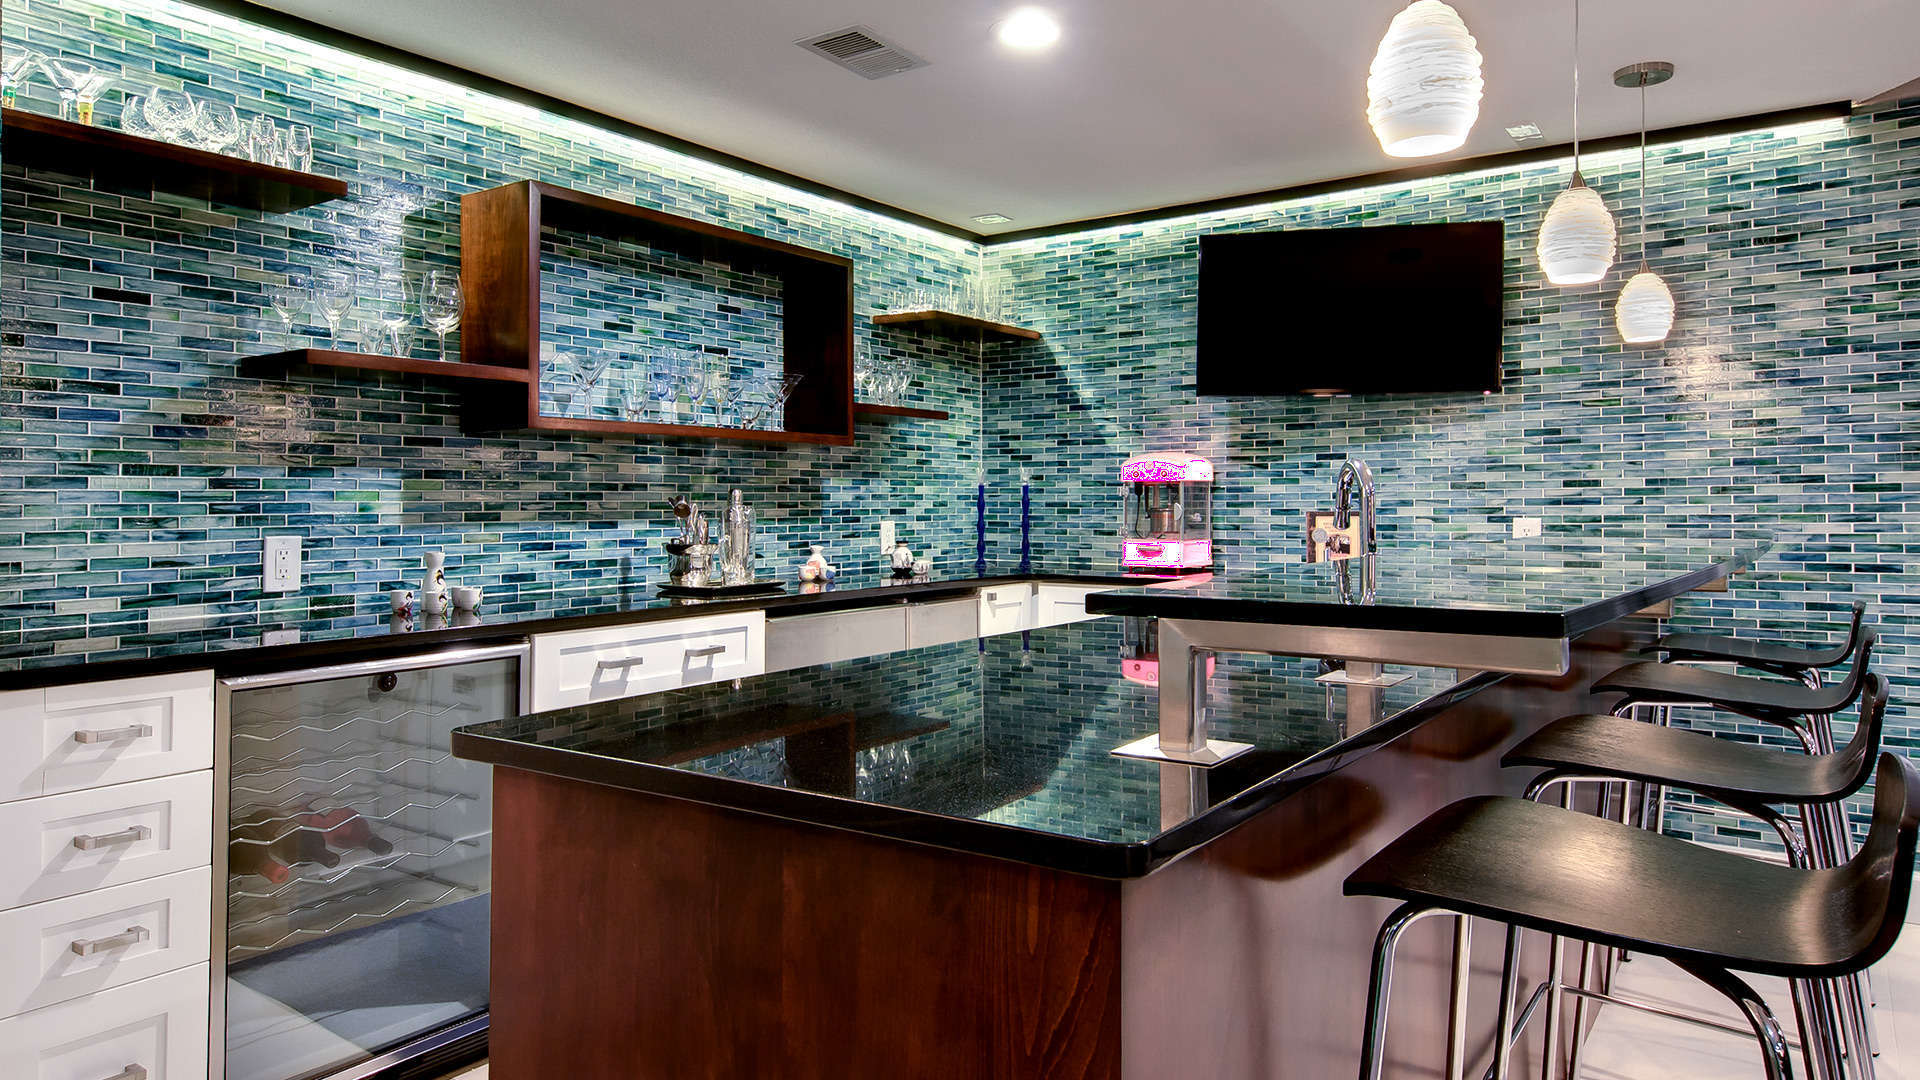 interior-designer-denver-kitchen-remodel-ku-interior-design+1080